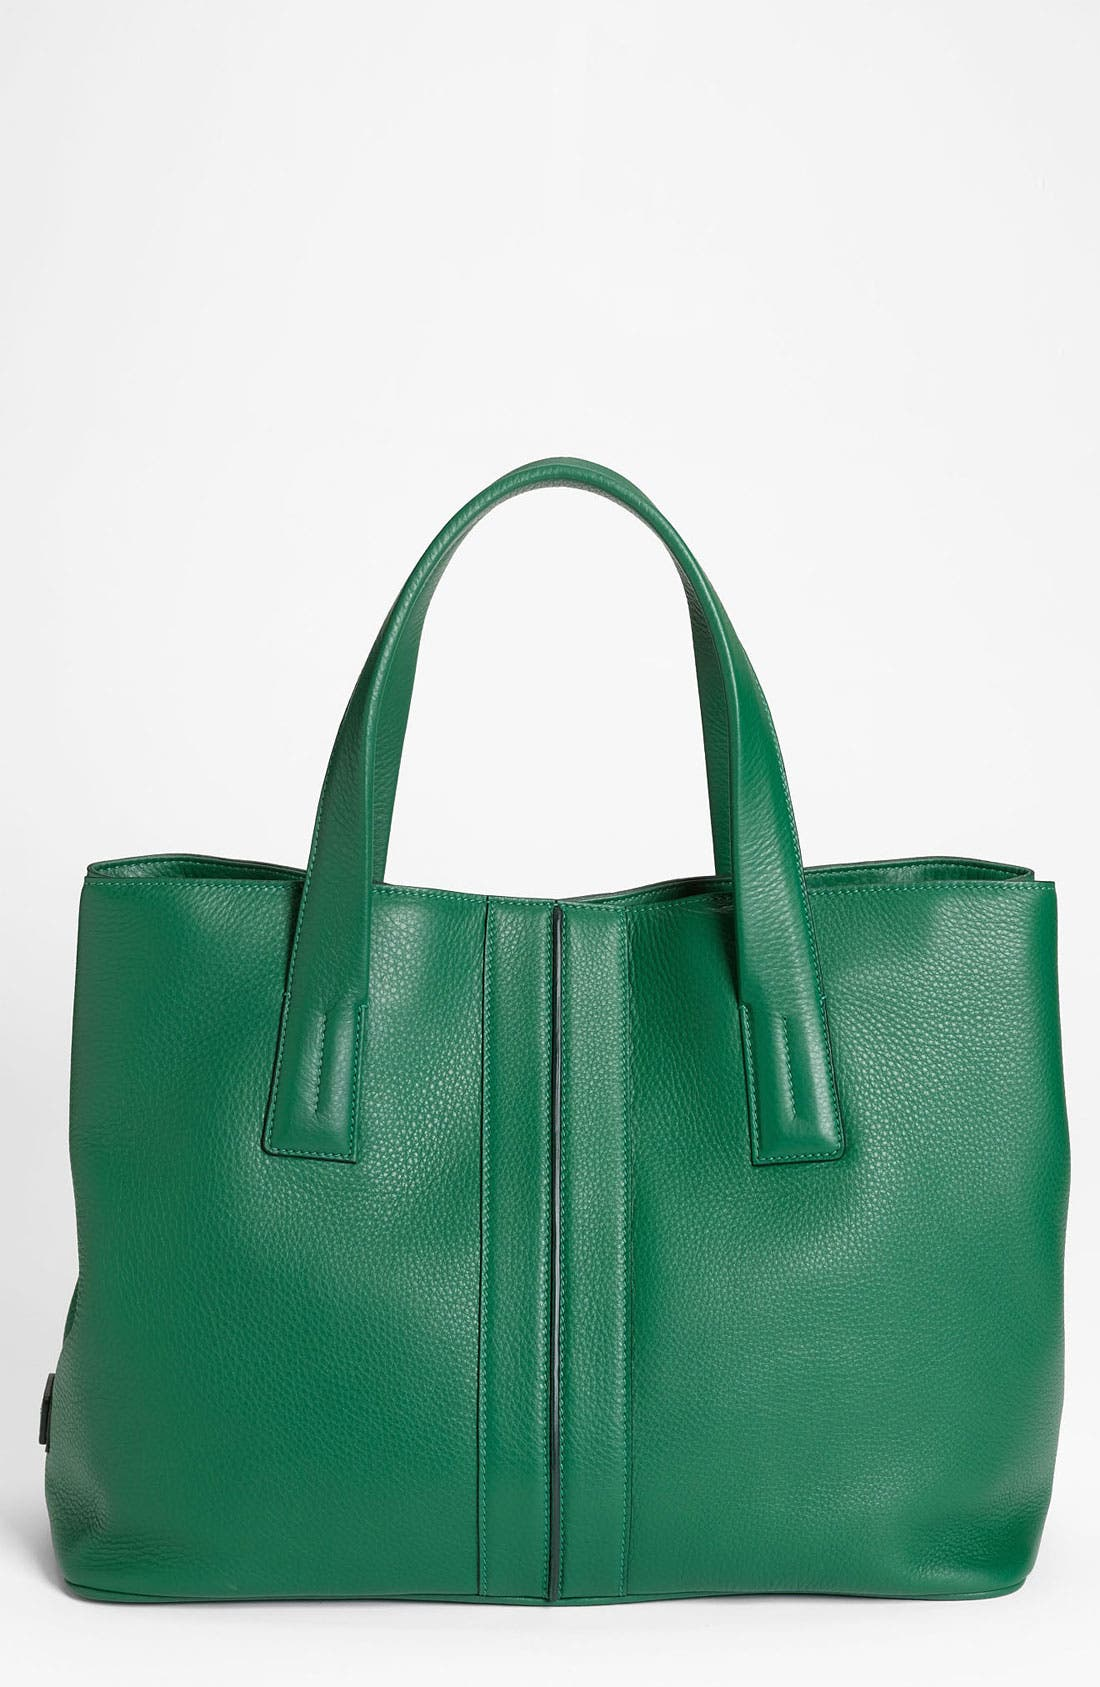 Alternate Image 1 Selected - Tod's East/West Tote Bag